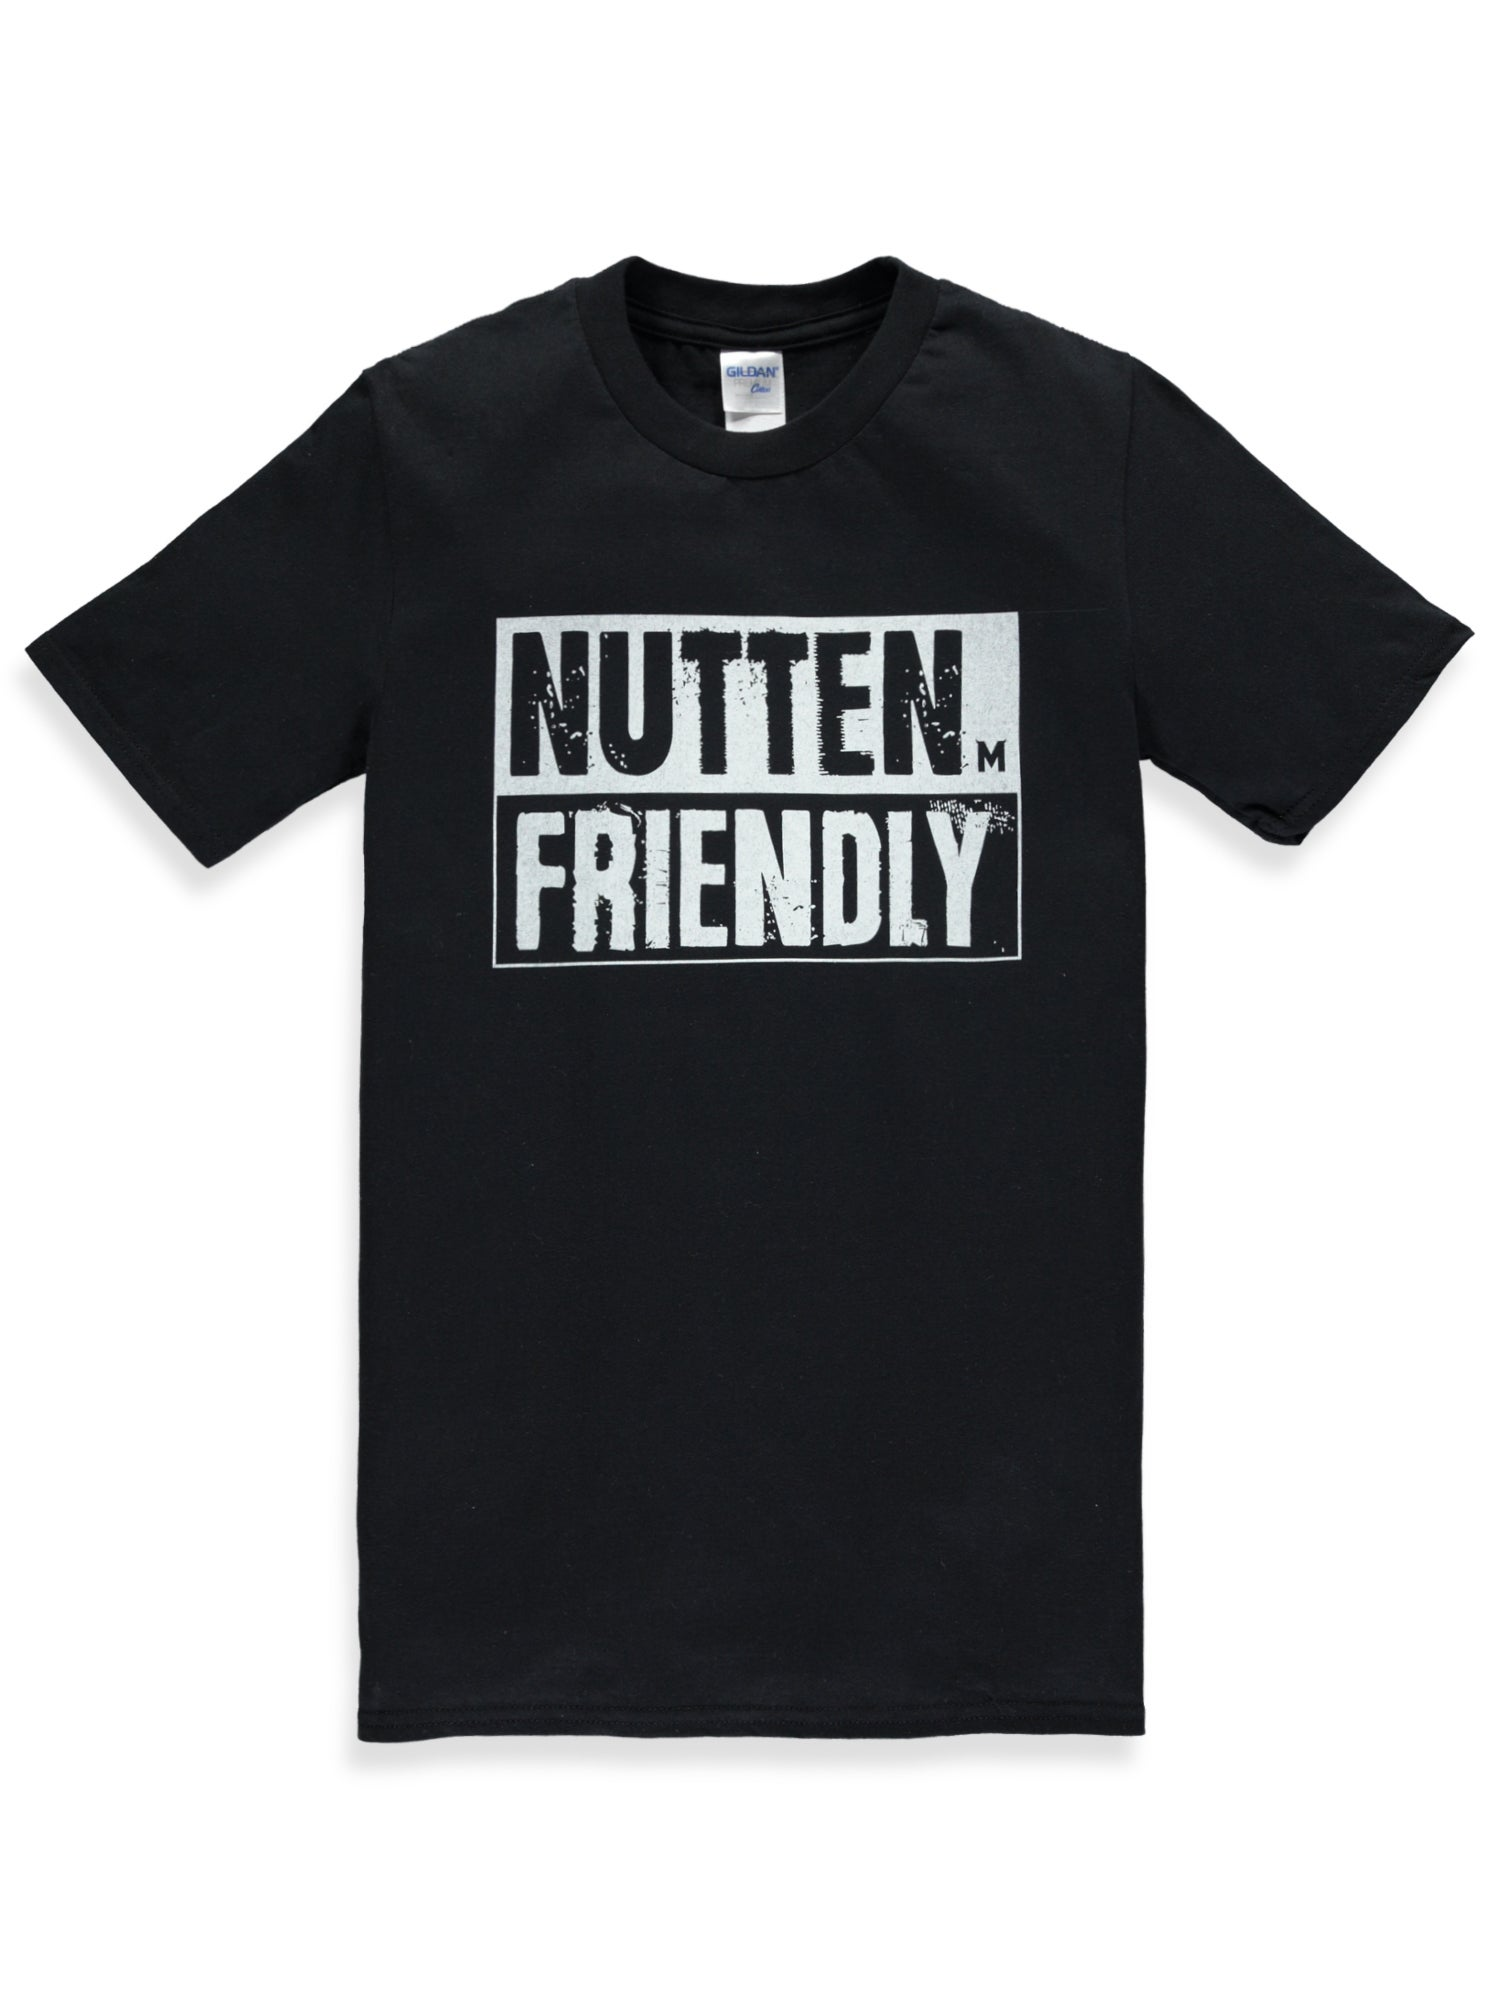 Image of Nutten Friendly T-shirt